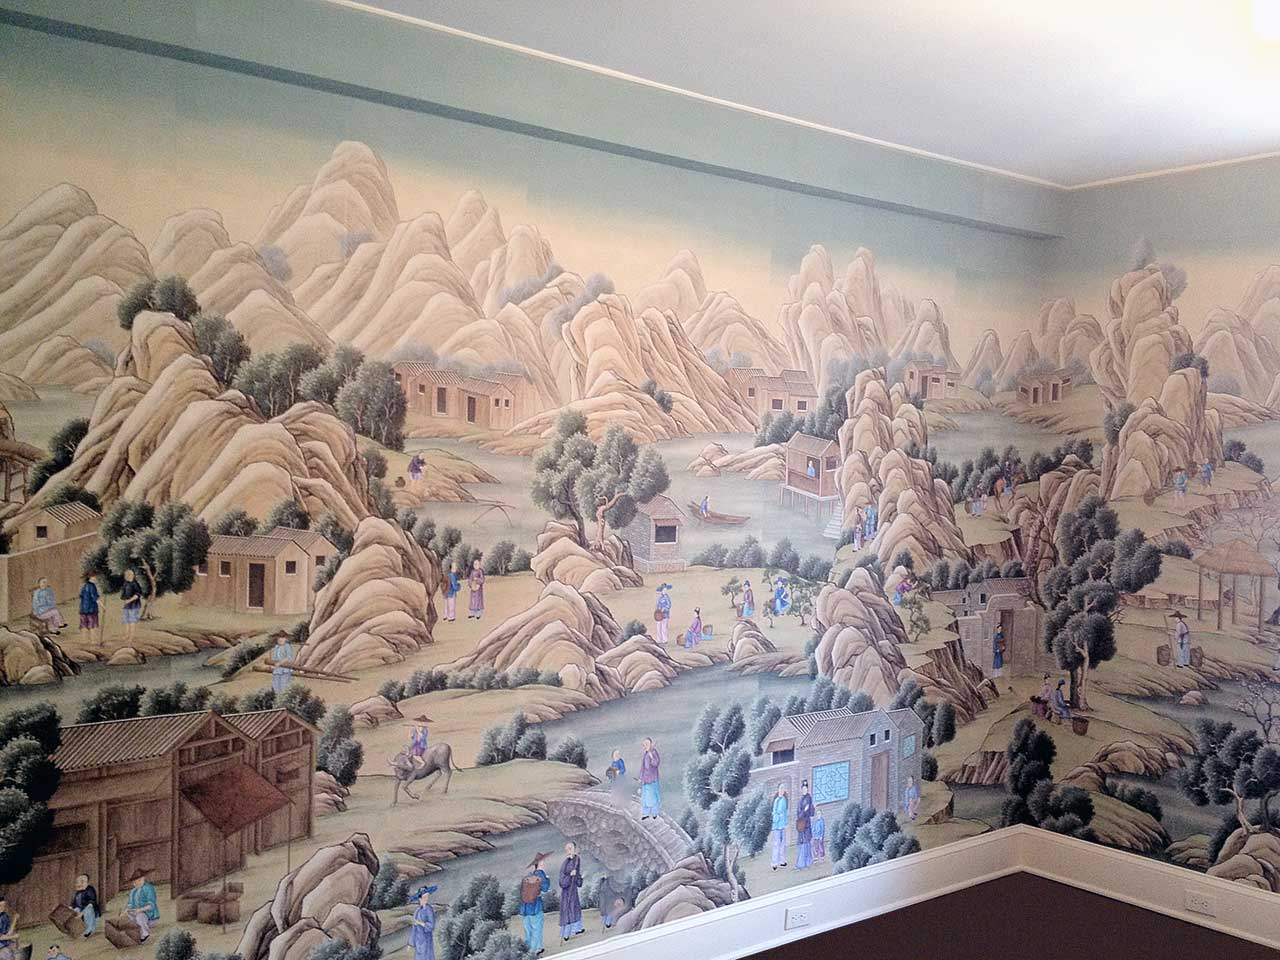 Chinese Rural Village hand painted by Gracie's artists.